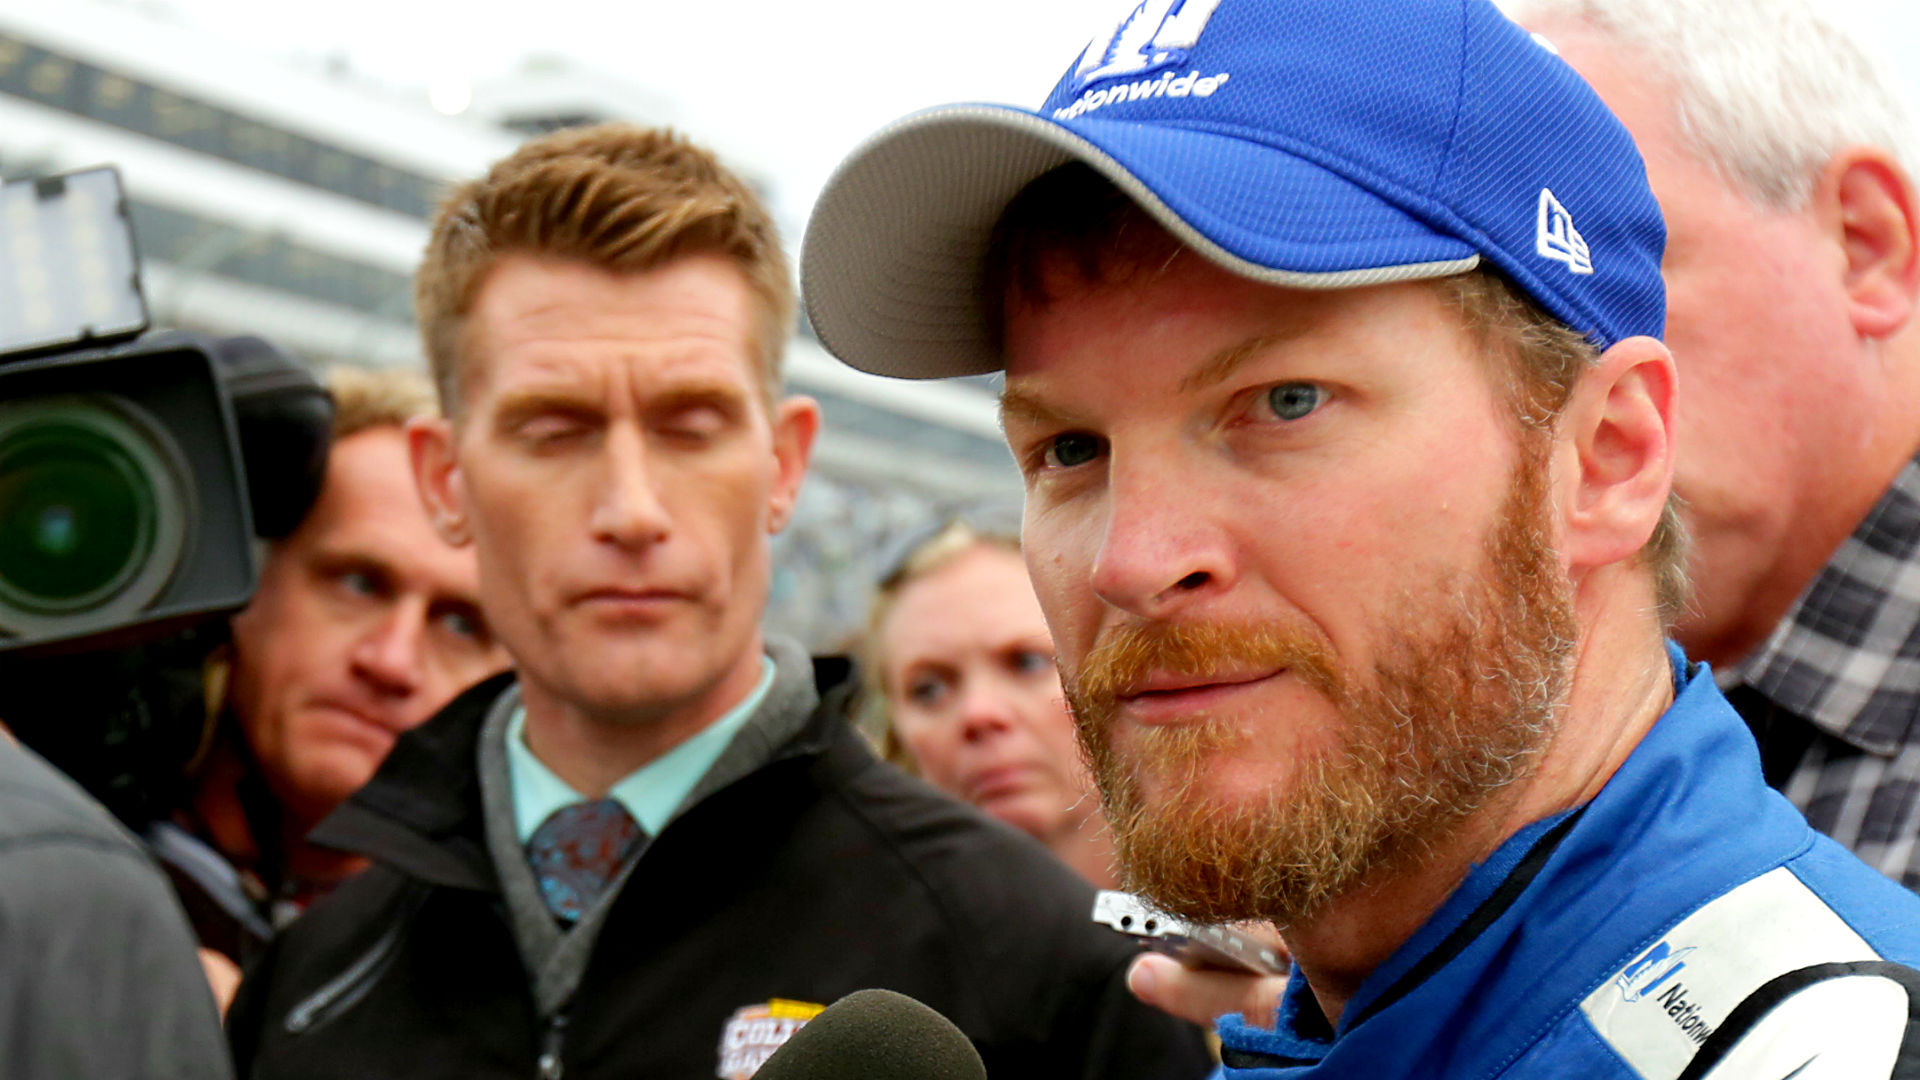 Dale Earnhardt Jr. warned after car's latest post-race inspection failure